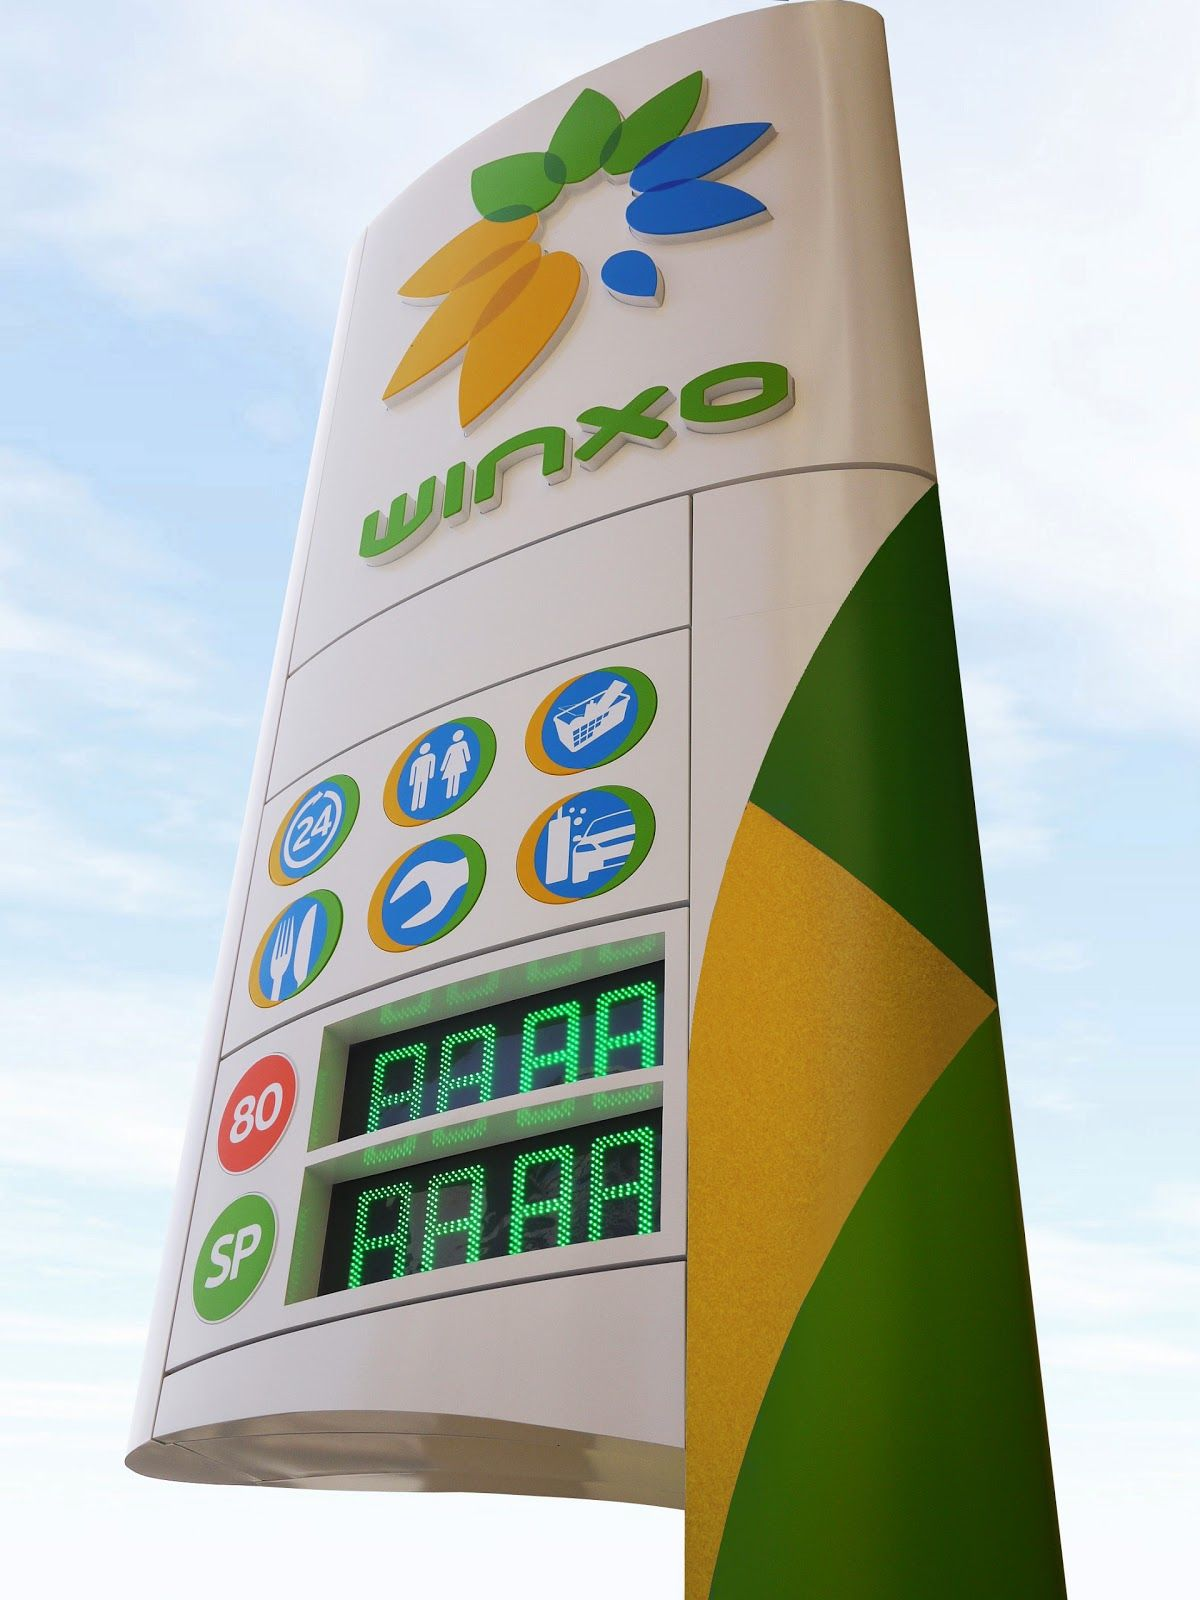 Winxo is the new name of Moroccan petroleum group CMH